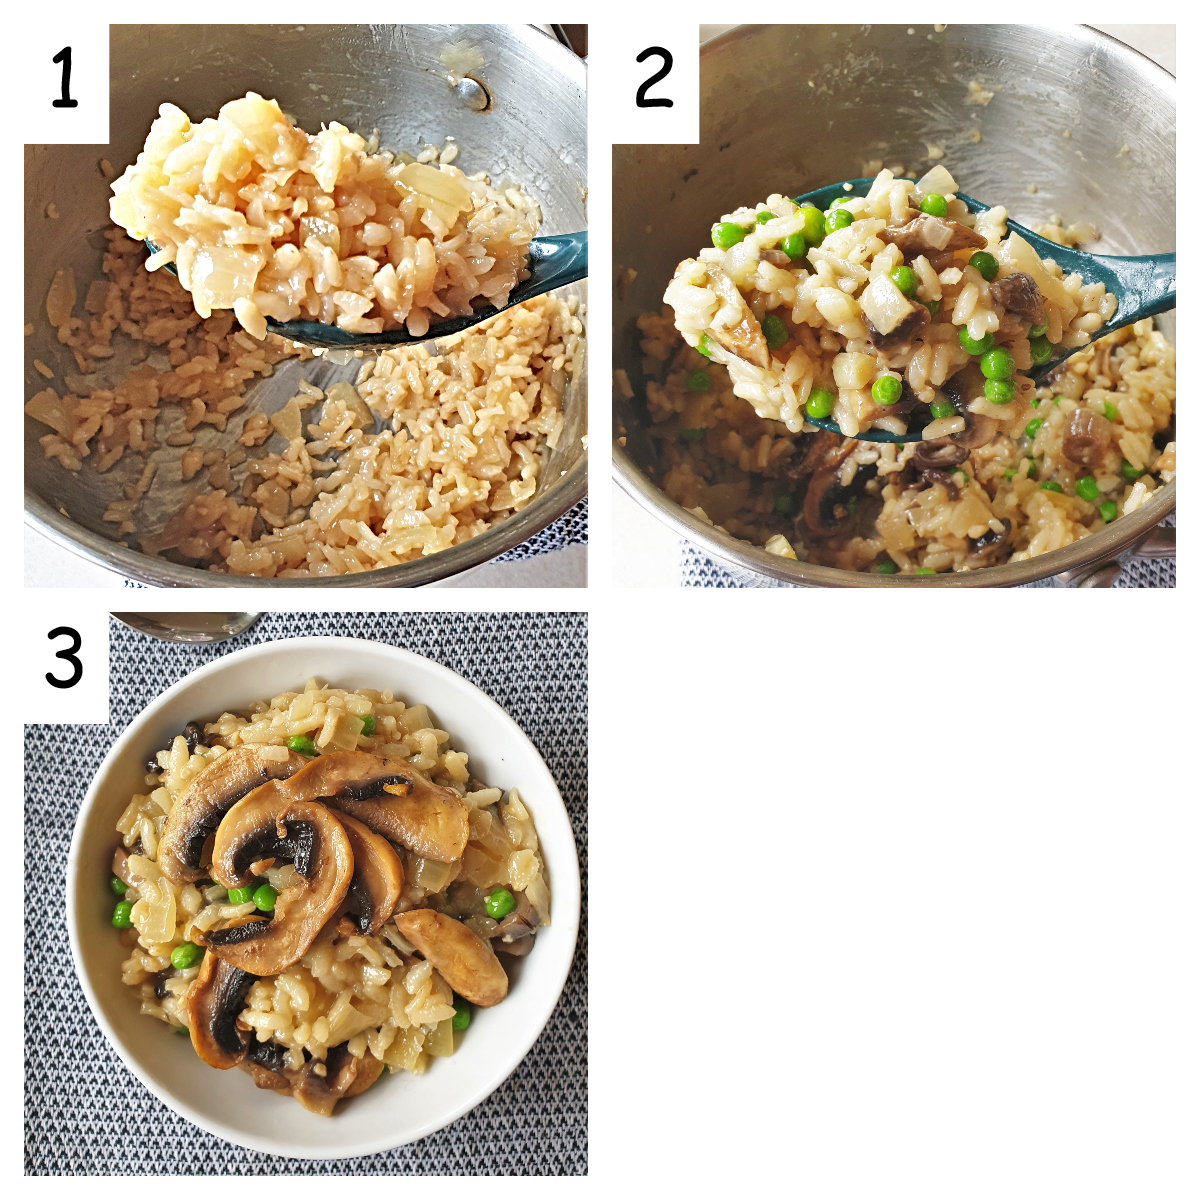 A collage of 3 images showing the texture of the cooked rice, and the finished dish once the mushrooms and peas have been added.